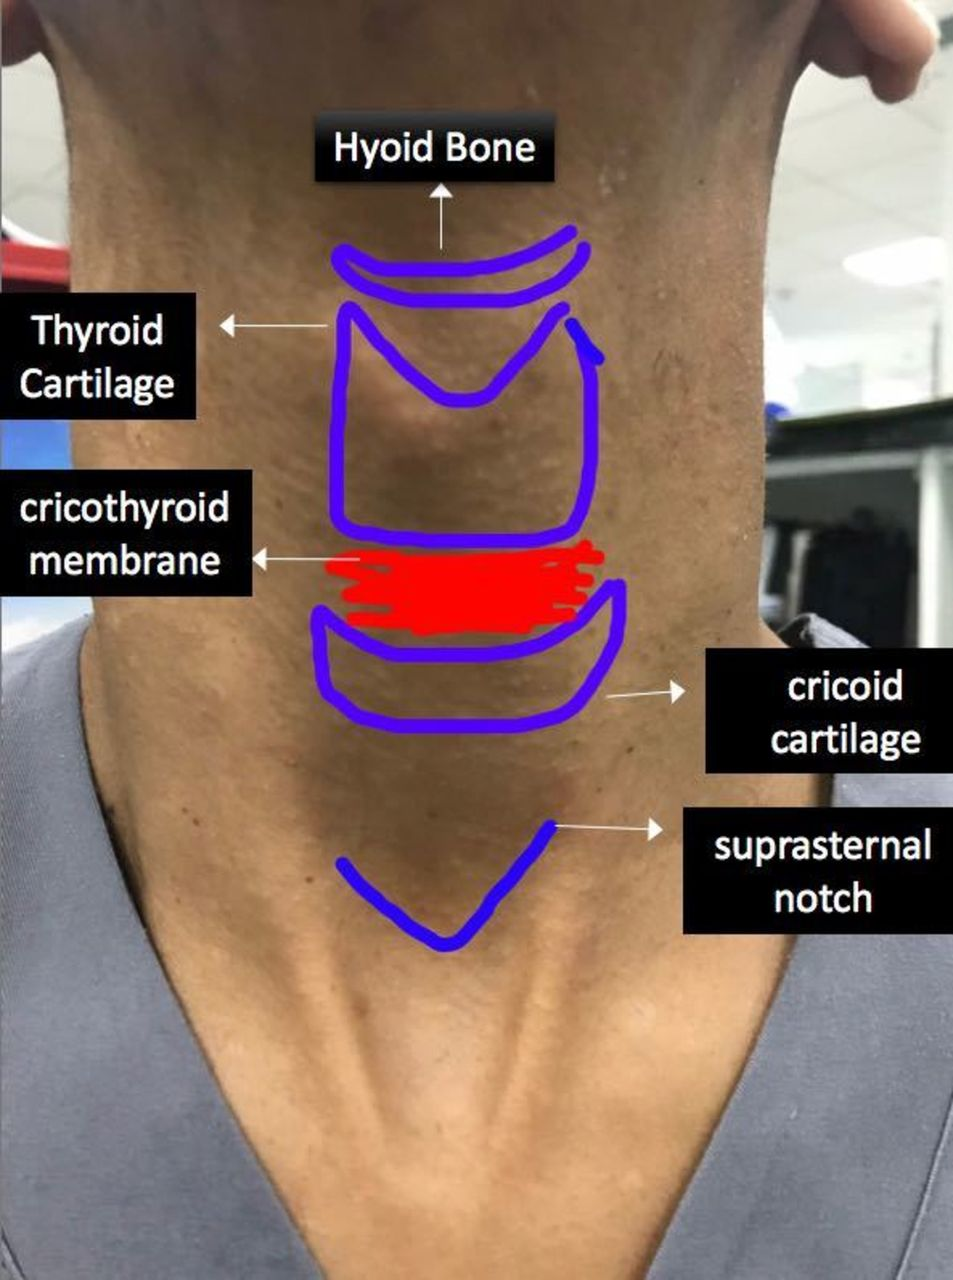 localisation of the cricothyroid membrane by digital